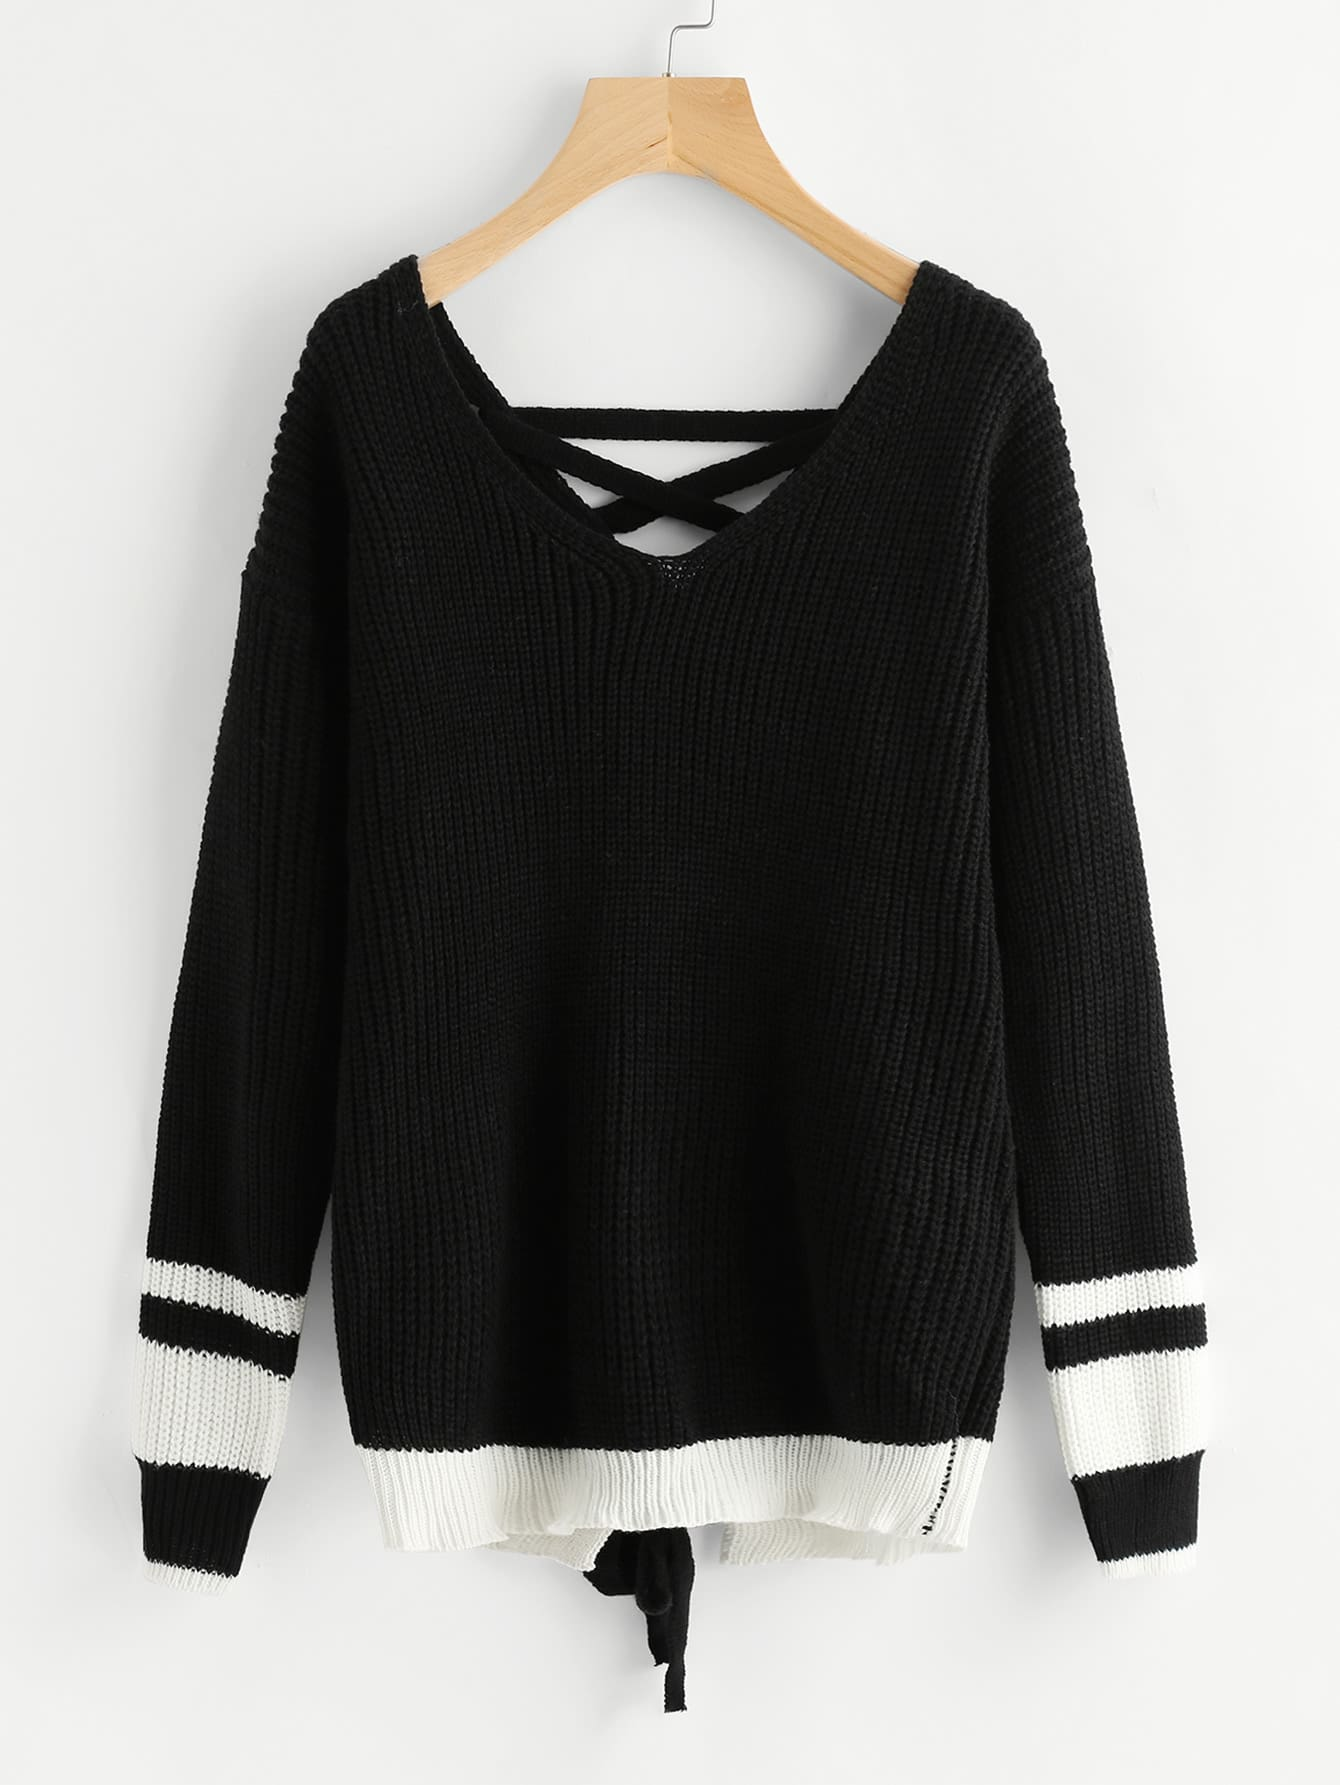 Contrast Striped Lace Up Back Jumper sweater170725457